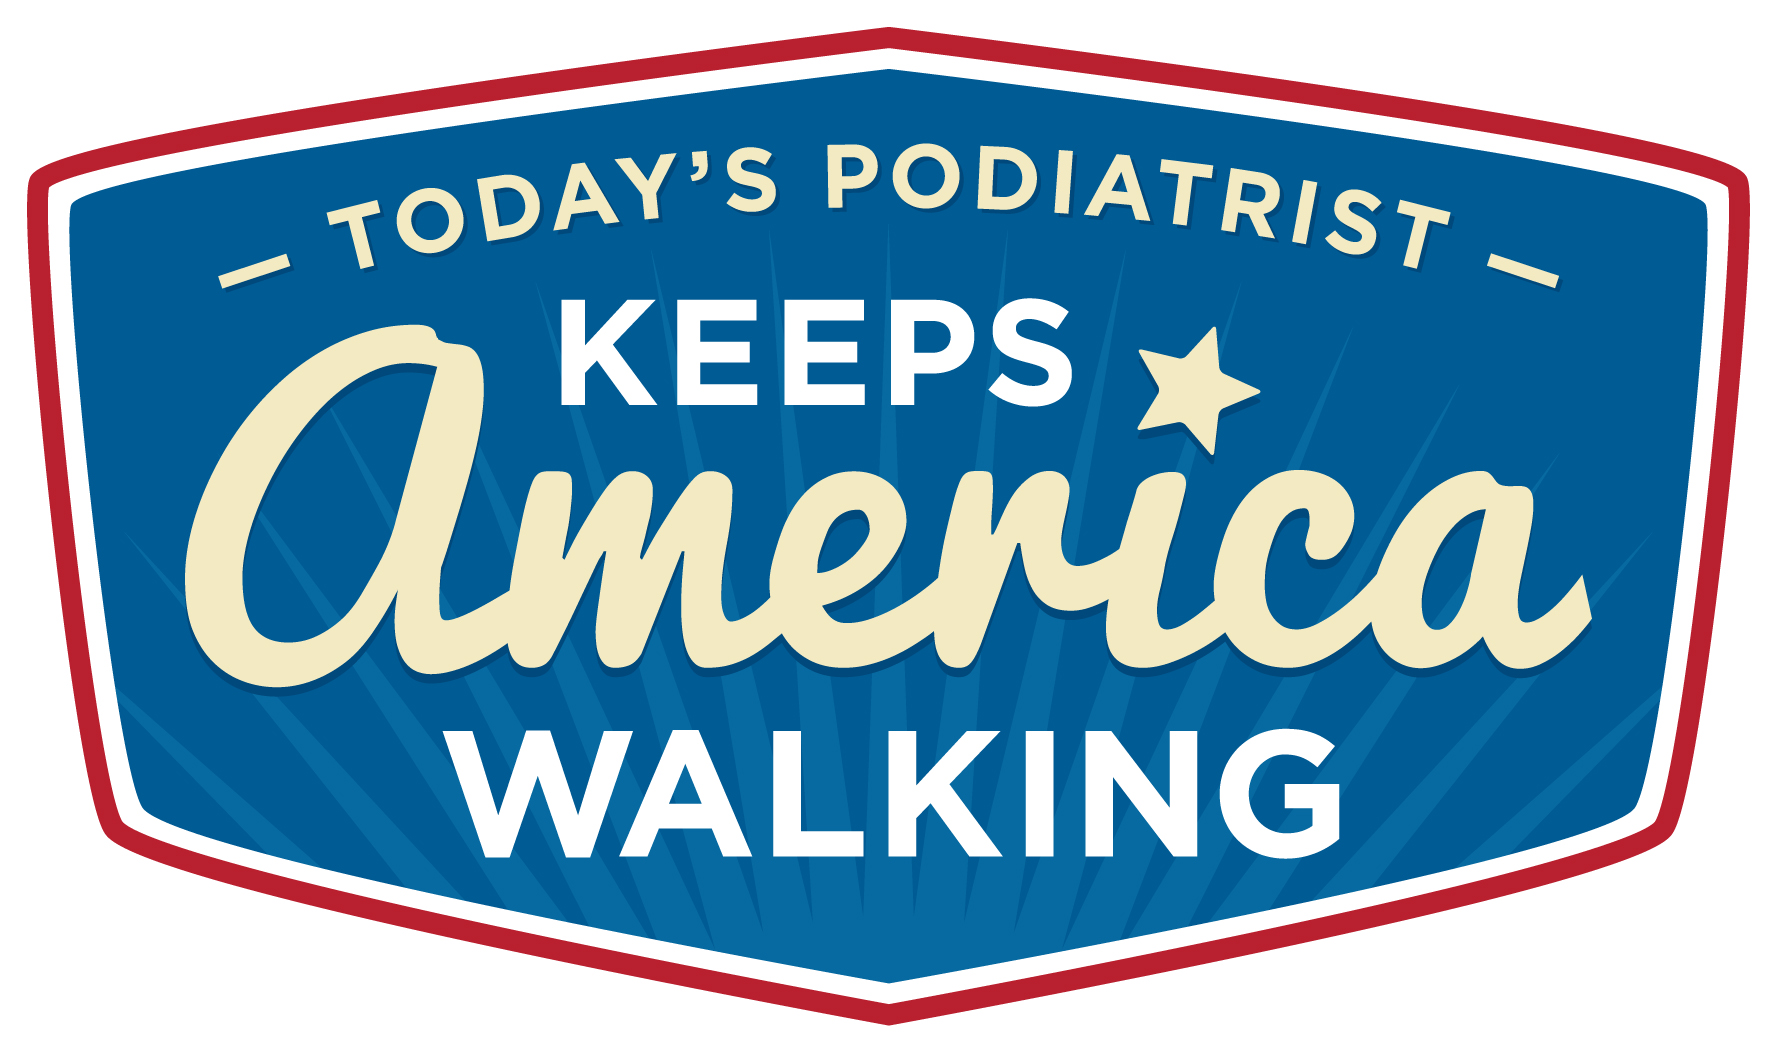 Today's Podiatrist Keeps America Walking Logo